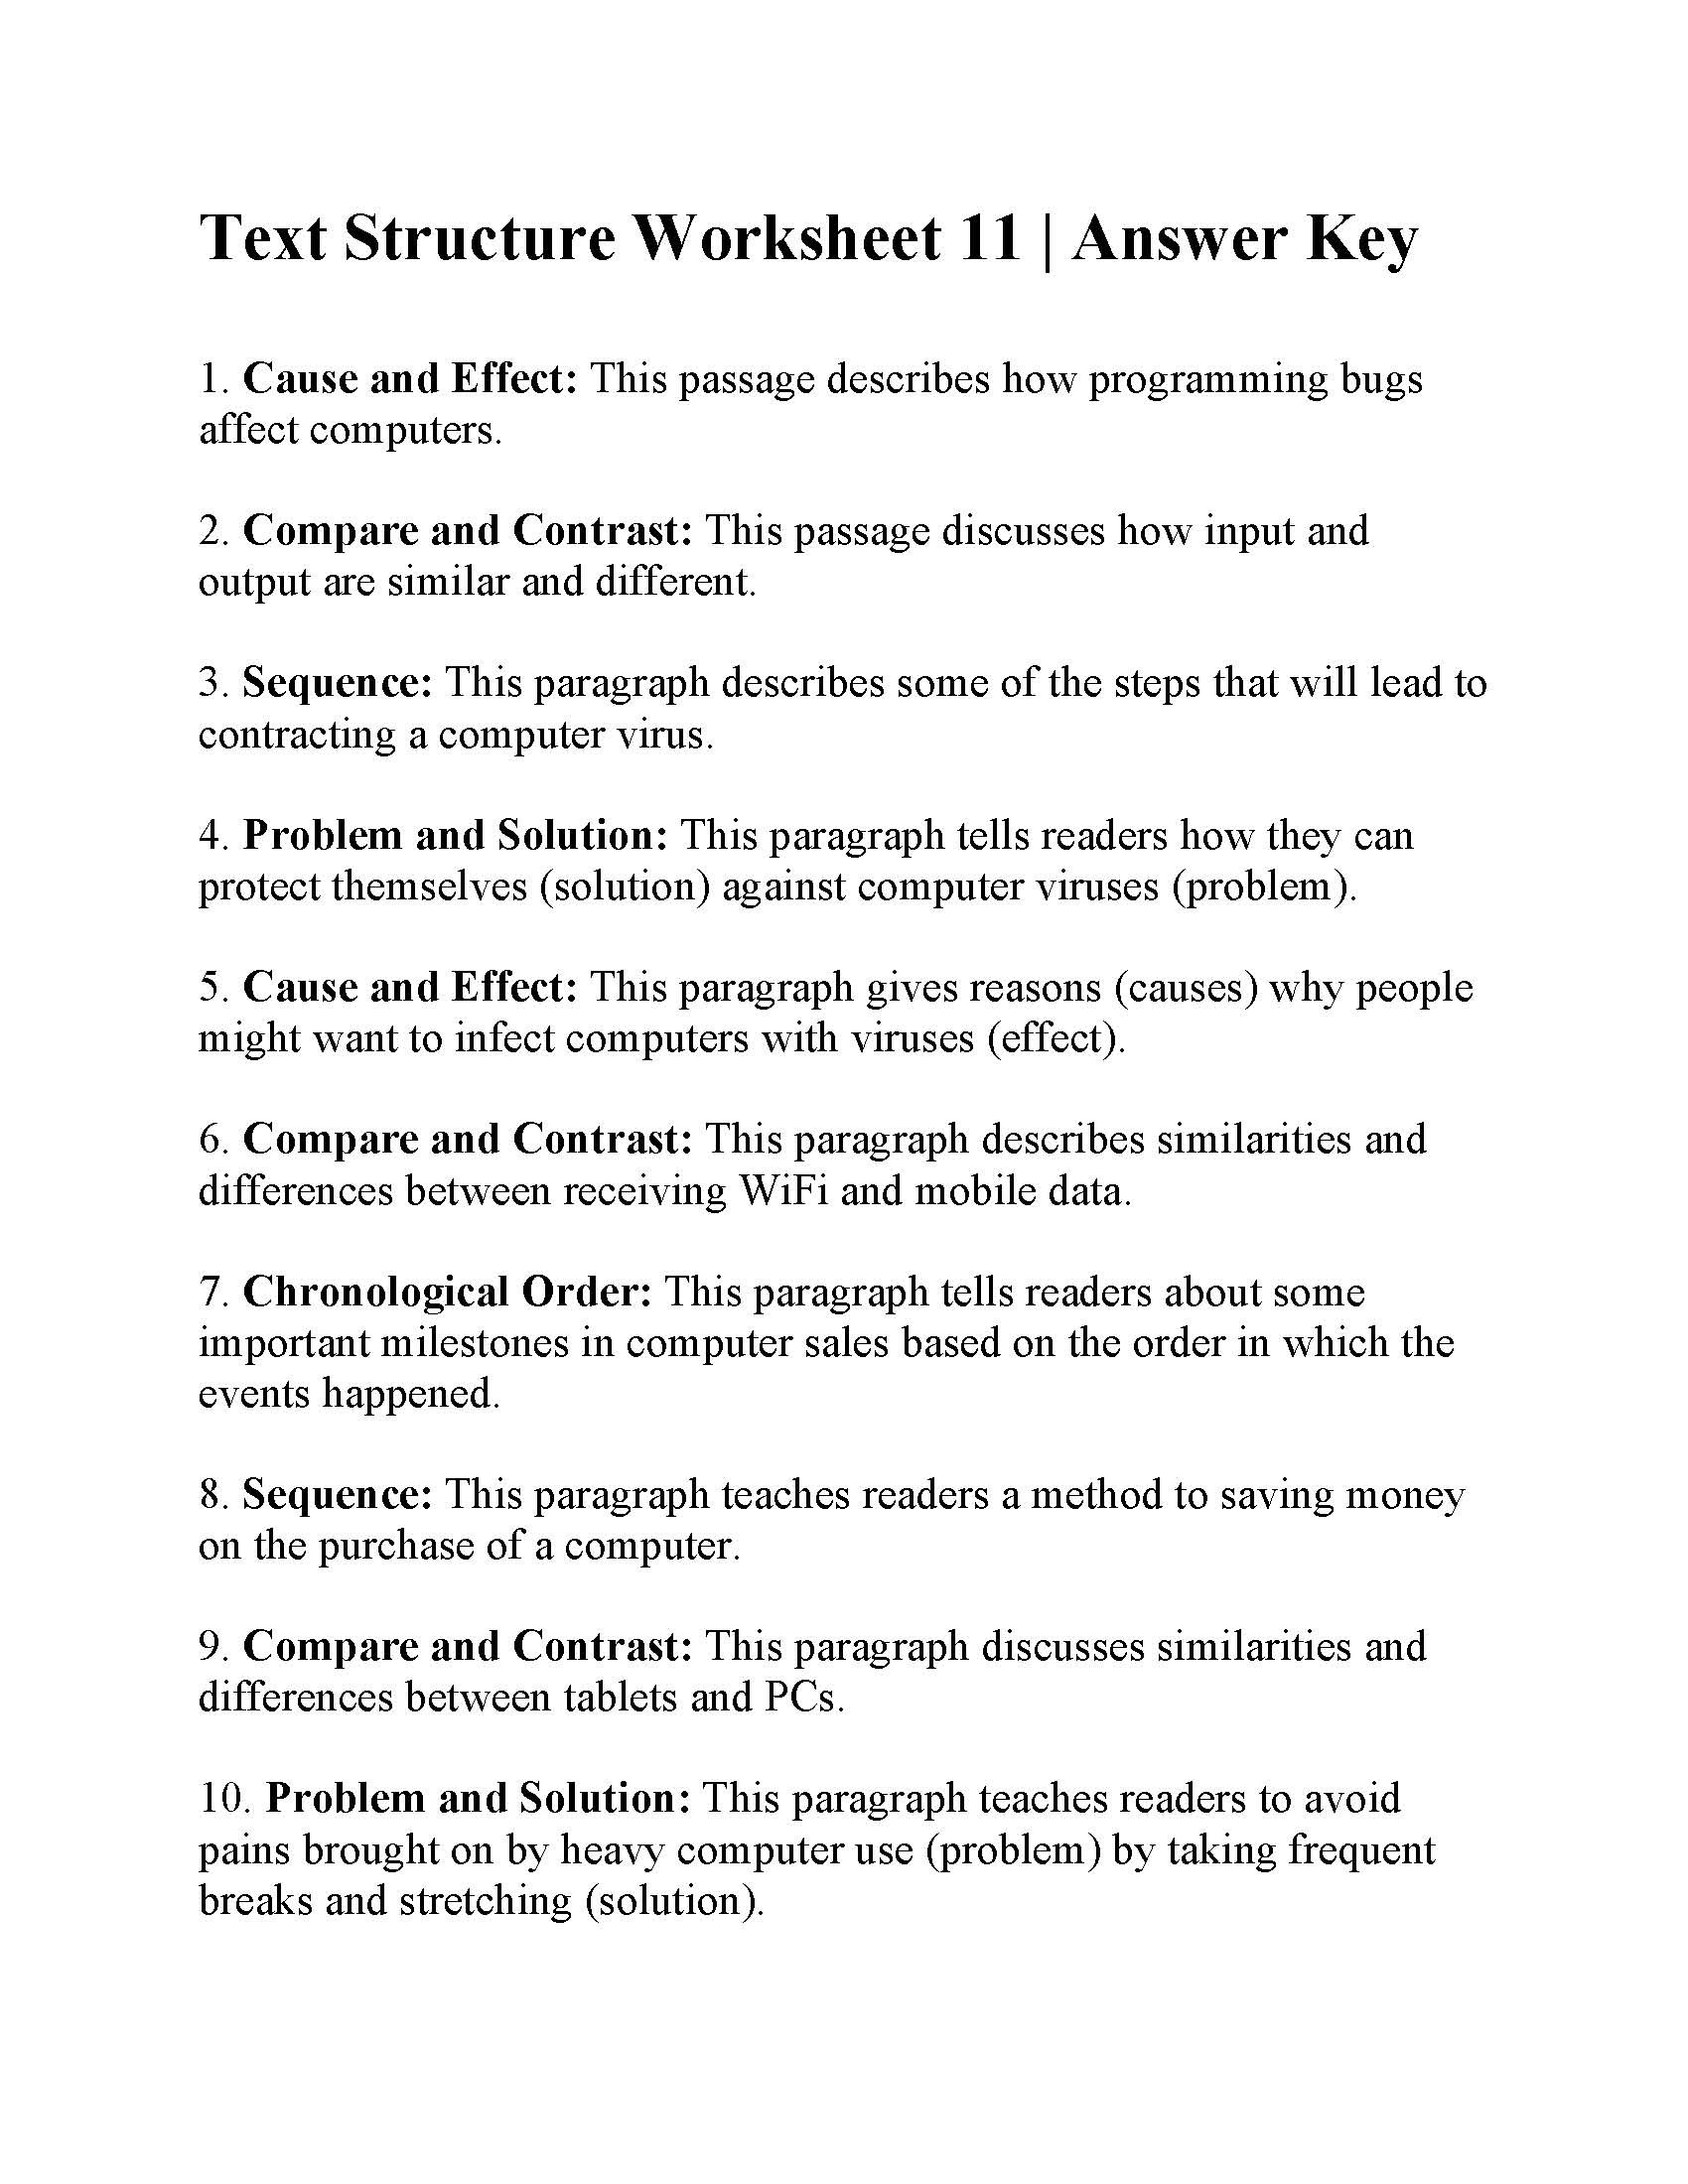 Text Structure 4th Grade Worksheets Text Structure Worksheet Answers Worksheets for Play Group